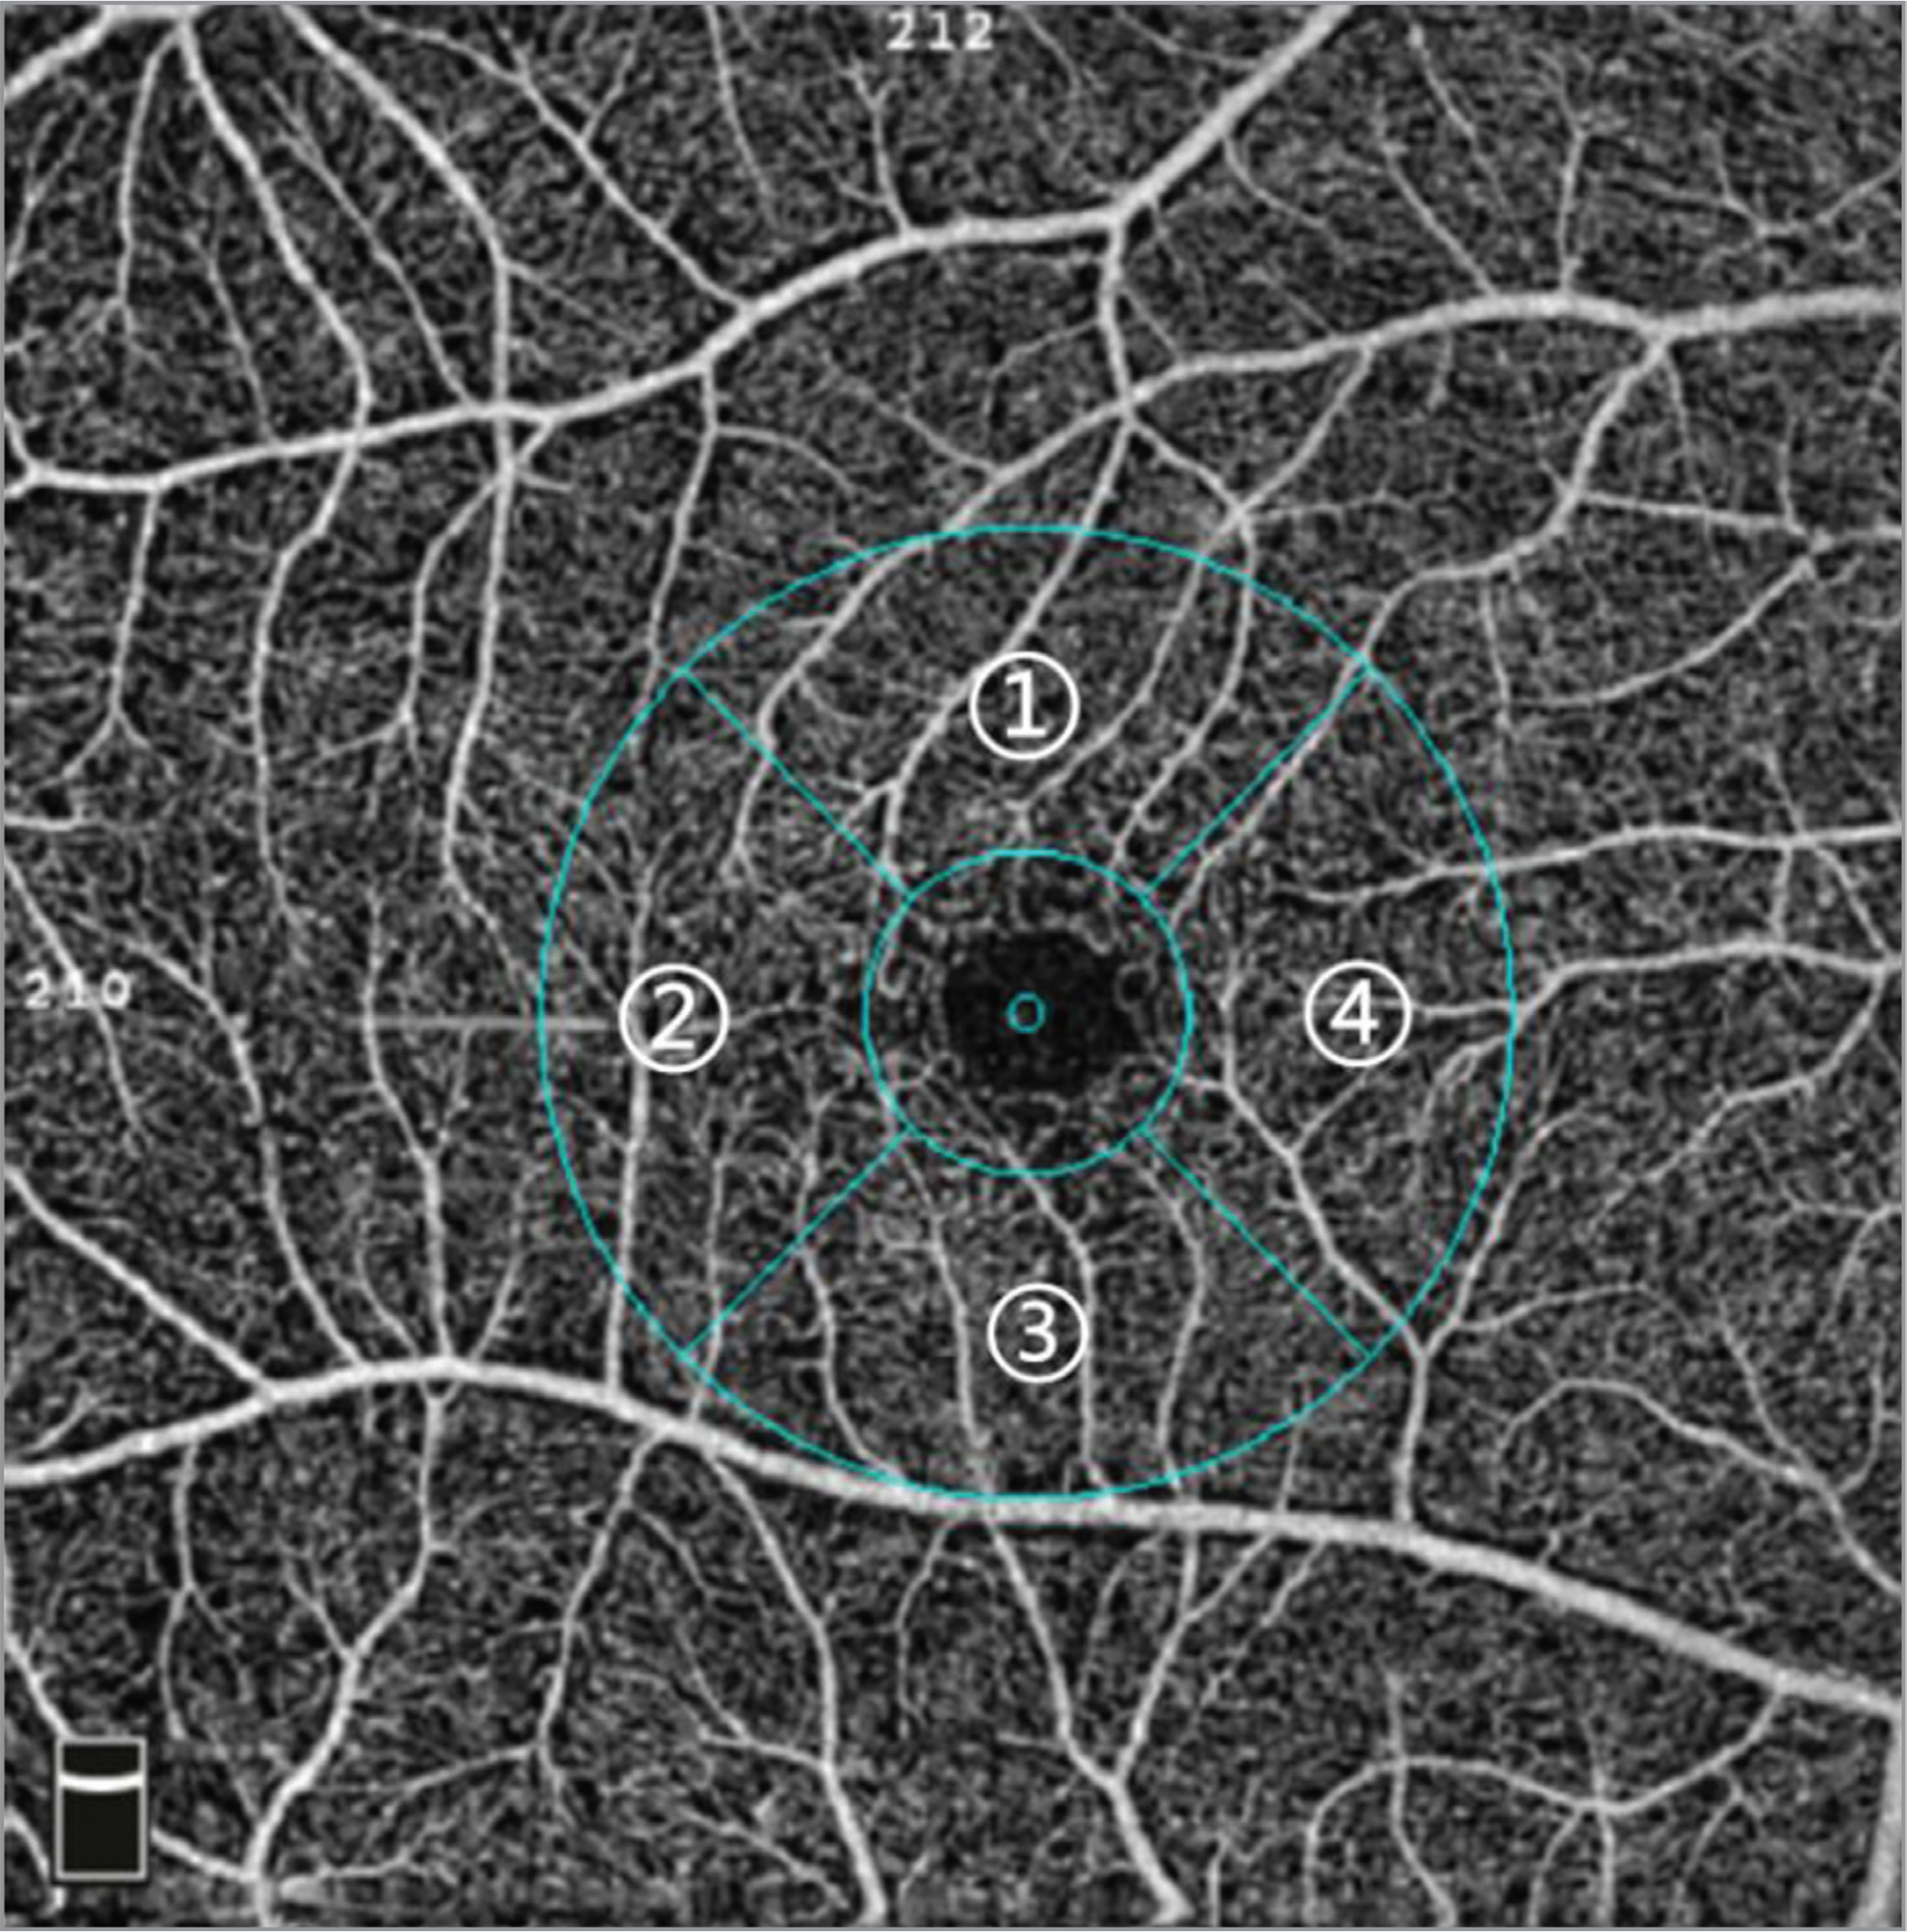 A high-definition 6 mm × 6 mm of the macular area in a normal individual in optical coherence tomography angiography. (1) Superior area in the parafoveal area. (2) Temporal area in the parafoveal area. (3) Inferior area in parafoveal area. (4) Nasal area in parafoveal area.